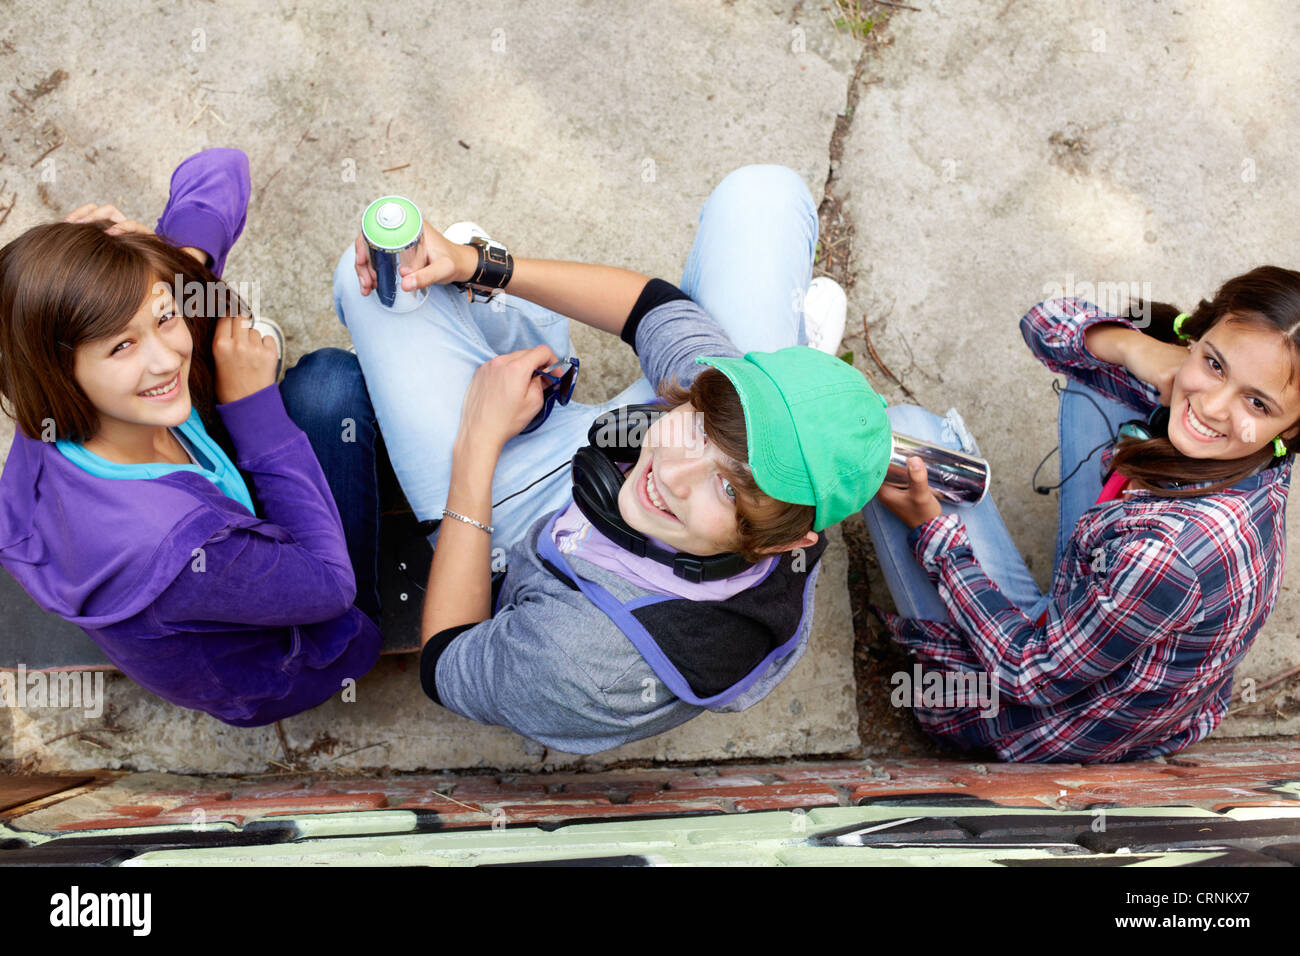 Group of teenagers with aerosol paint sitting and looking up at the camera - Stock Image